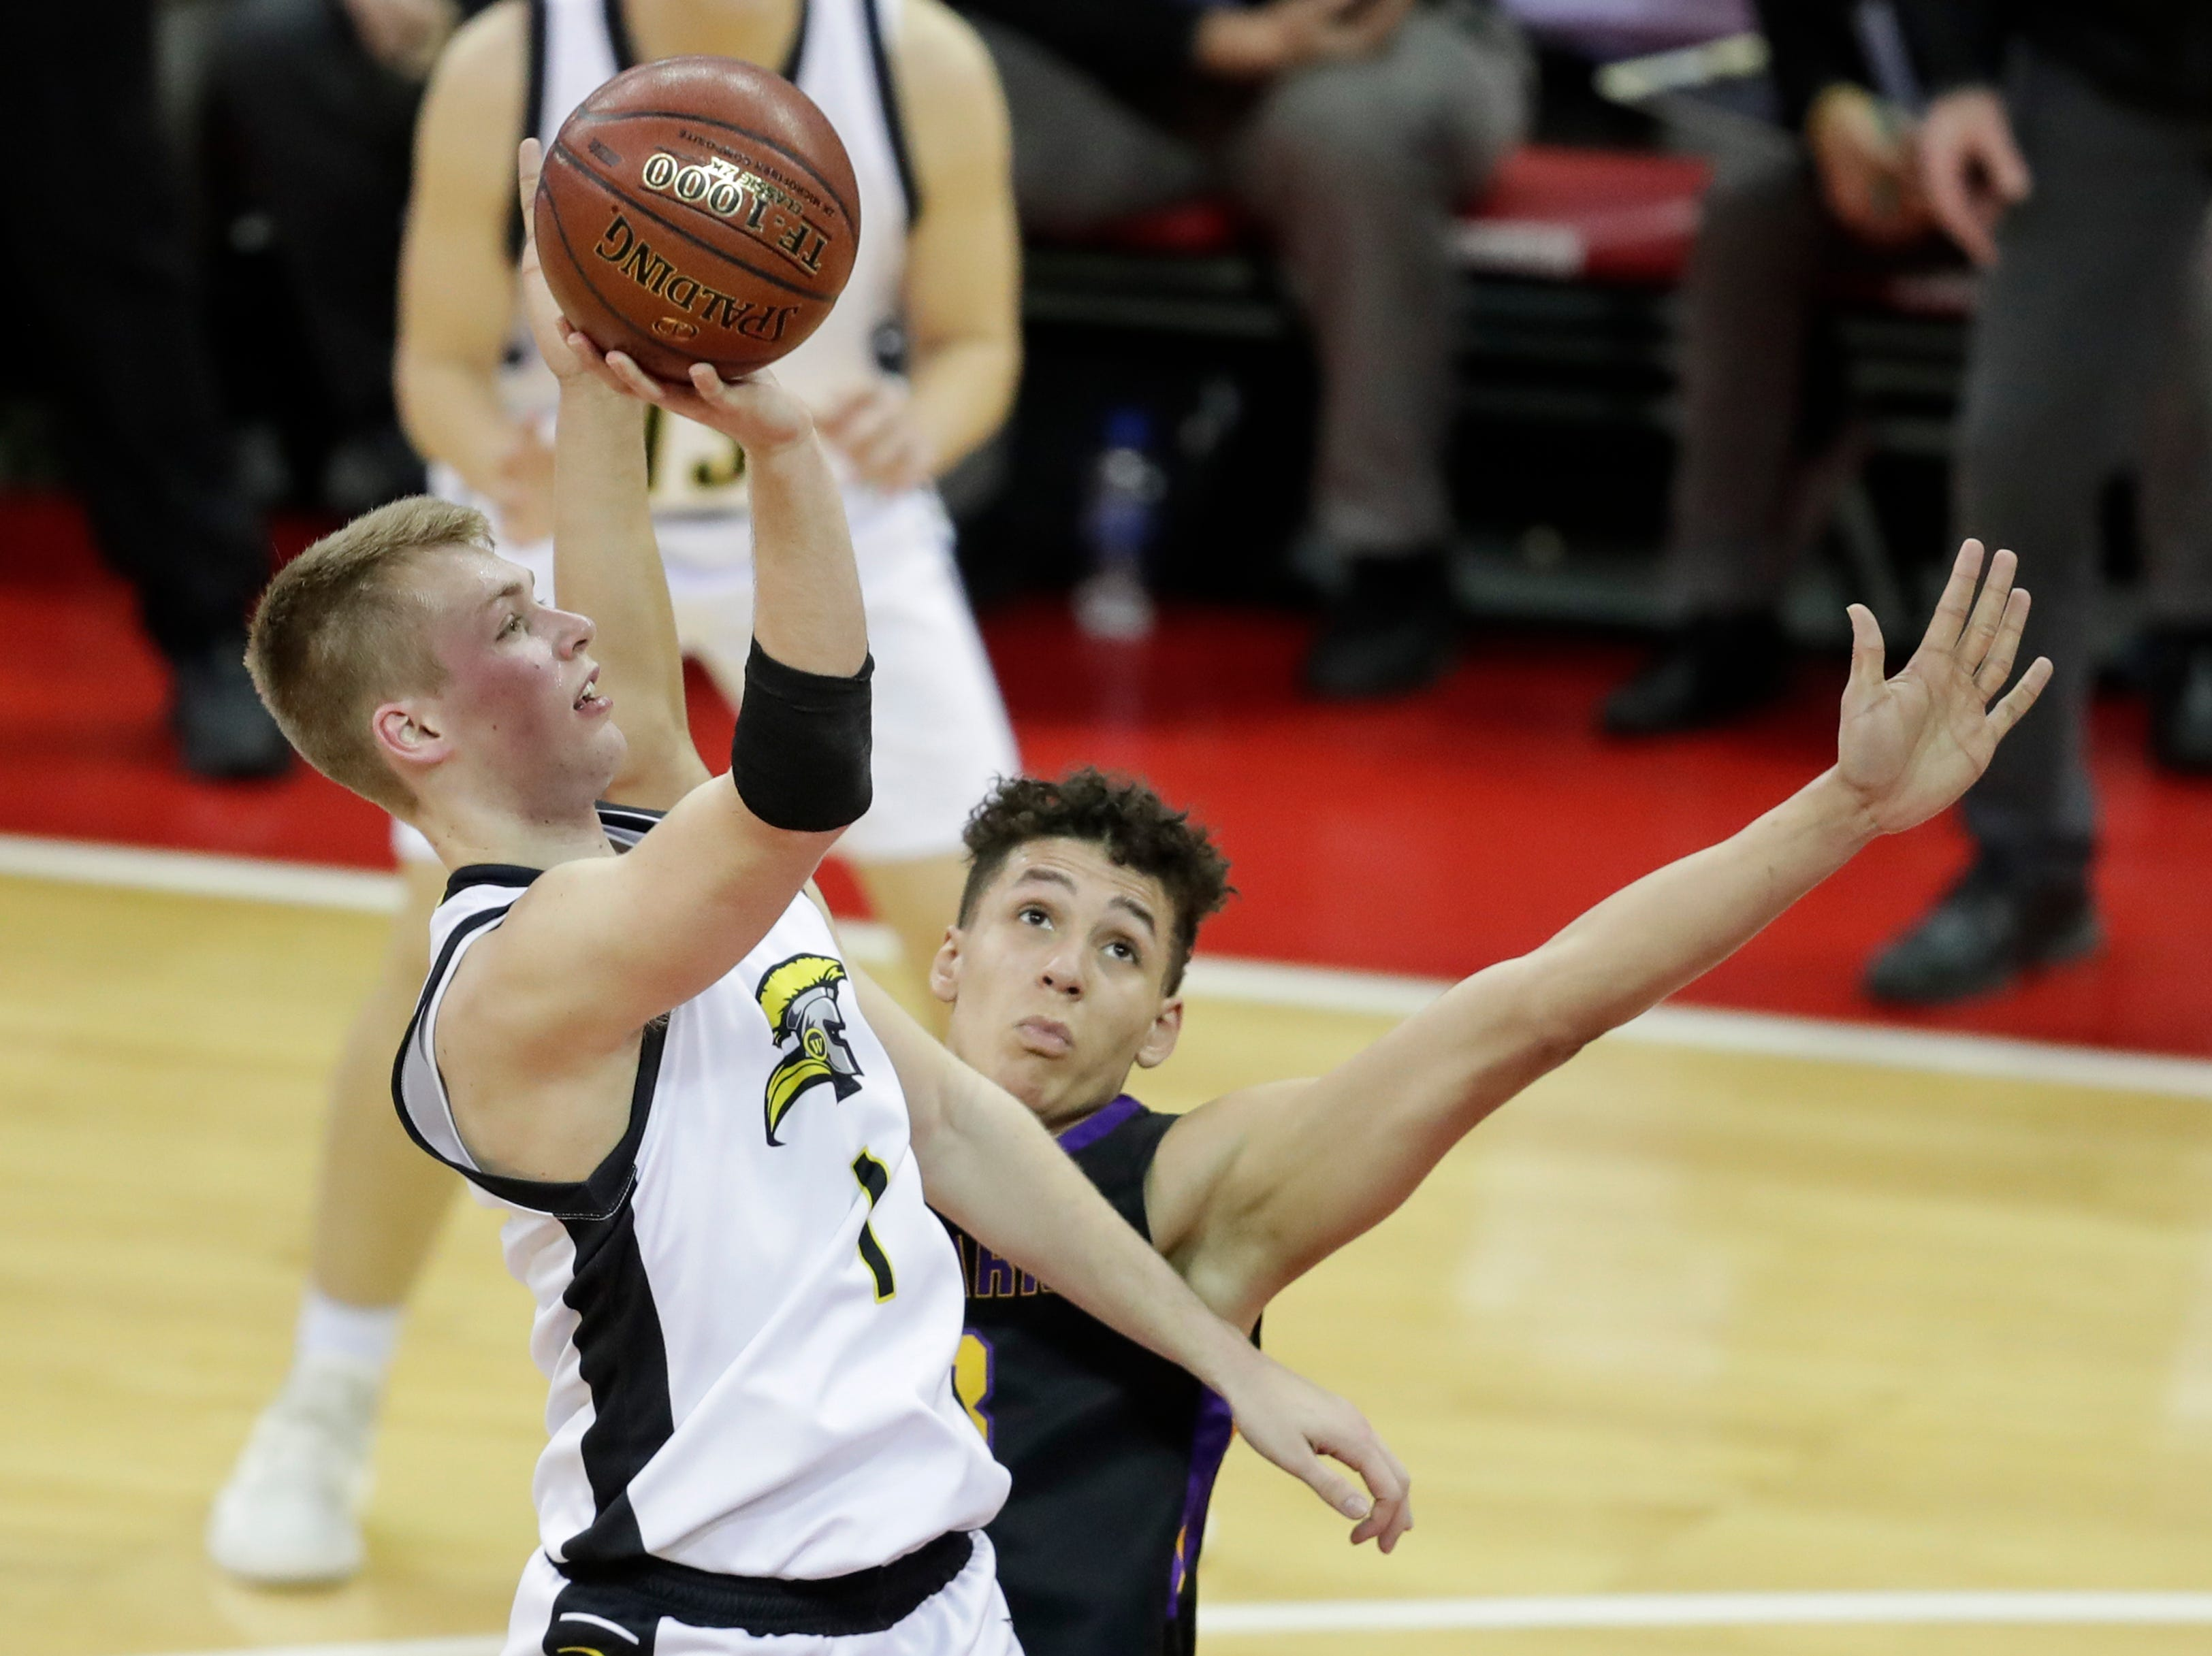 Waupun's Marcus Domask (1) shoots over Denmark's Patrick Suemnick (33) during their WIAA Division 3 boys basketball state semifinal at the Kohl Center Thursday, March 14, 2019, in Madison, Wis.